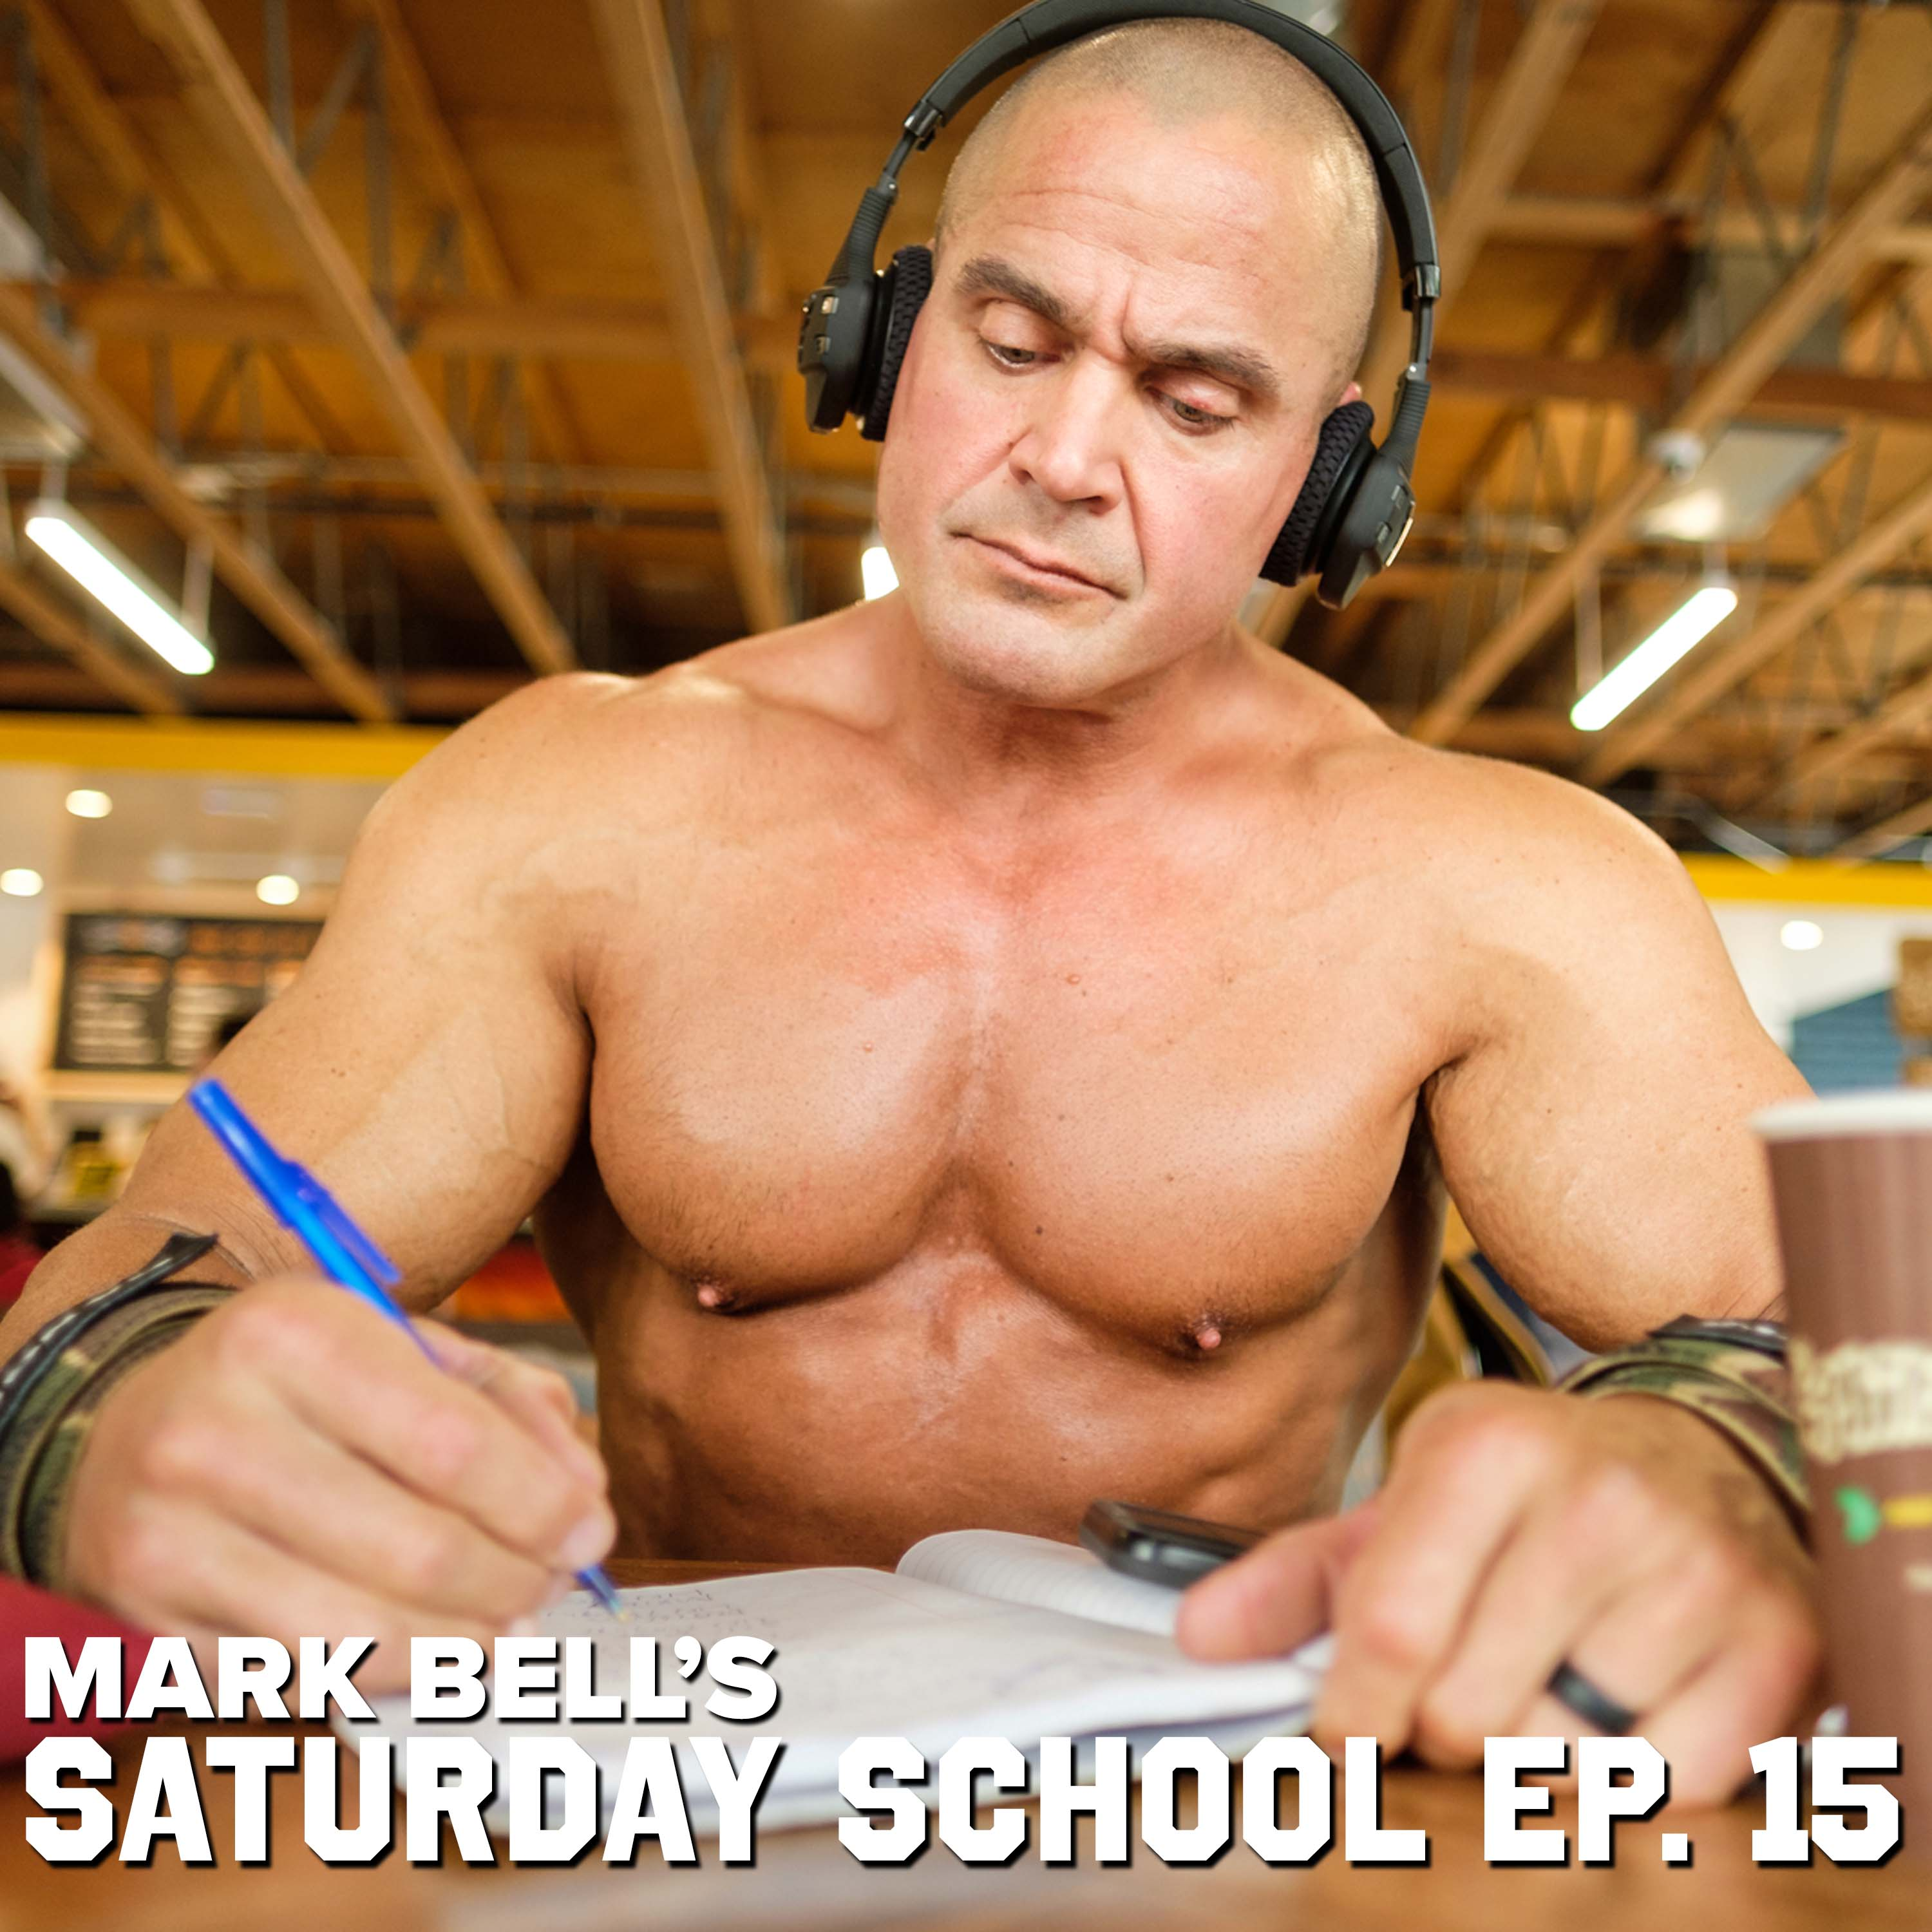 Mark Bell's Saturday School EP. 15 - Draw A Line In The Sand - Make Exercise Your #1 Priority